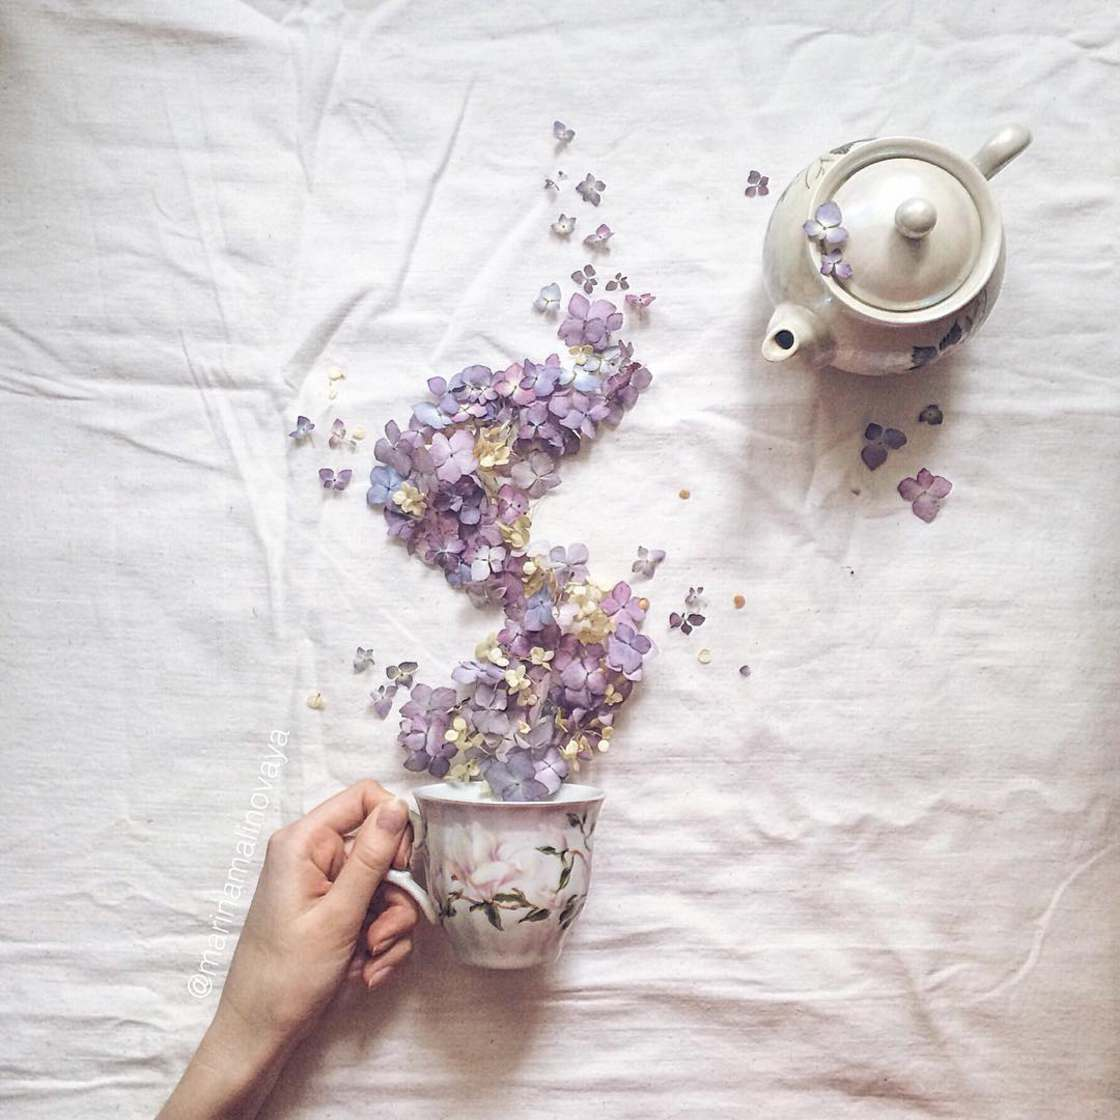 Floral Tea Story - The soft and poetic creations of Marina Malinovaya